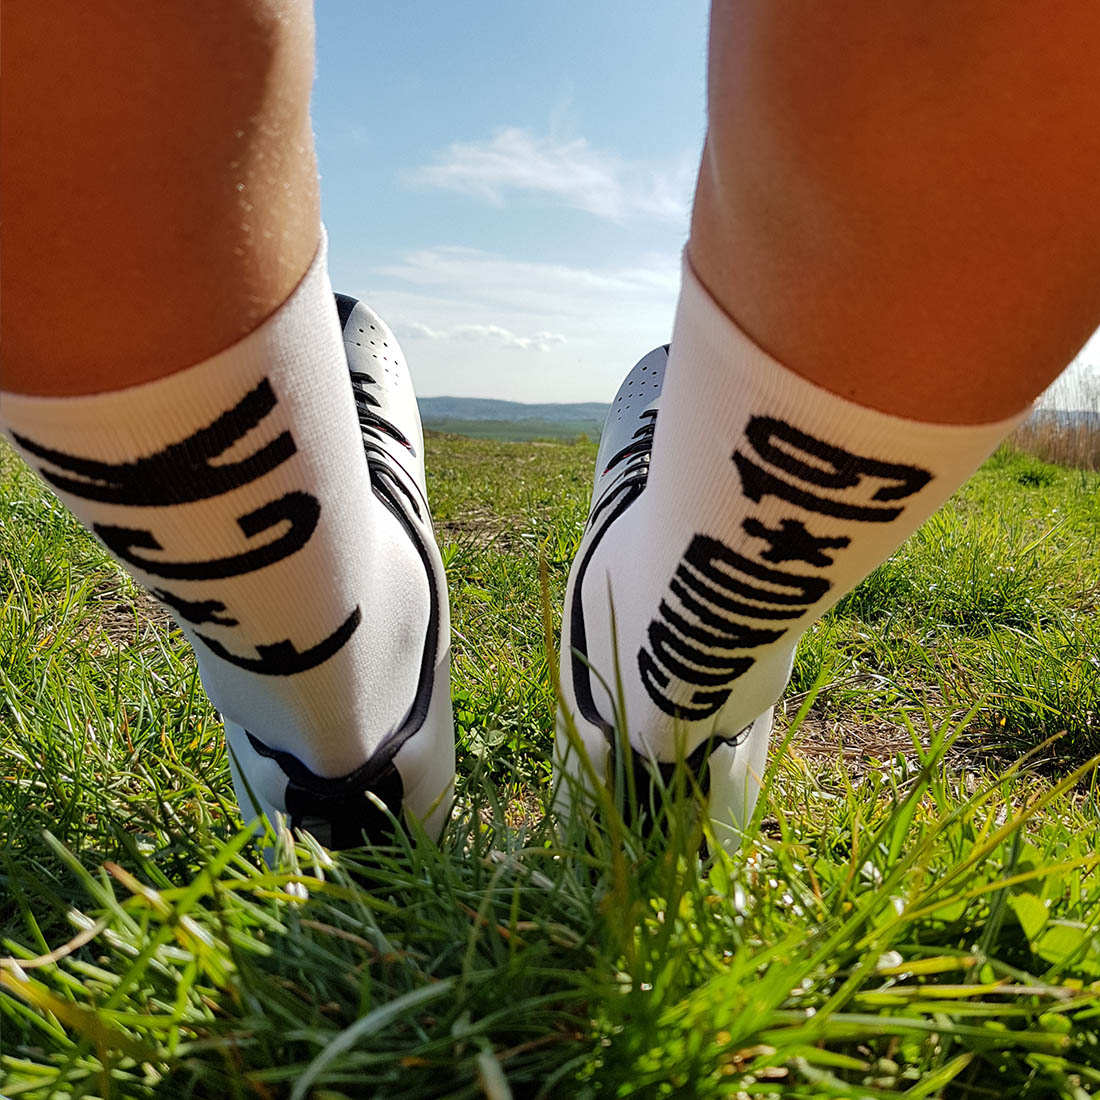 cyclist on the grass wearing fck covid-19 socks